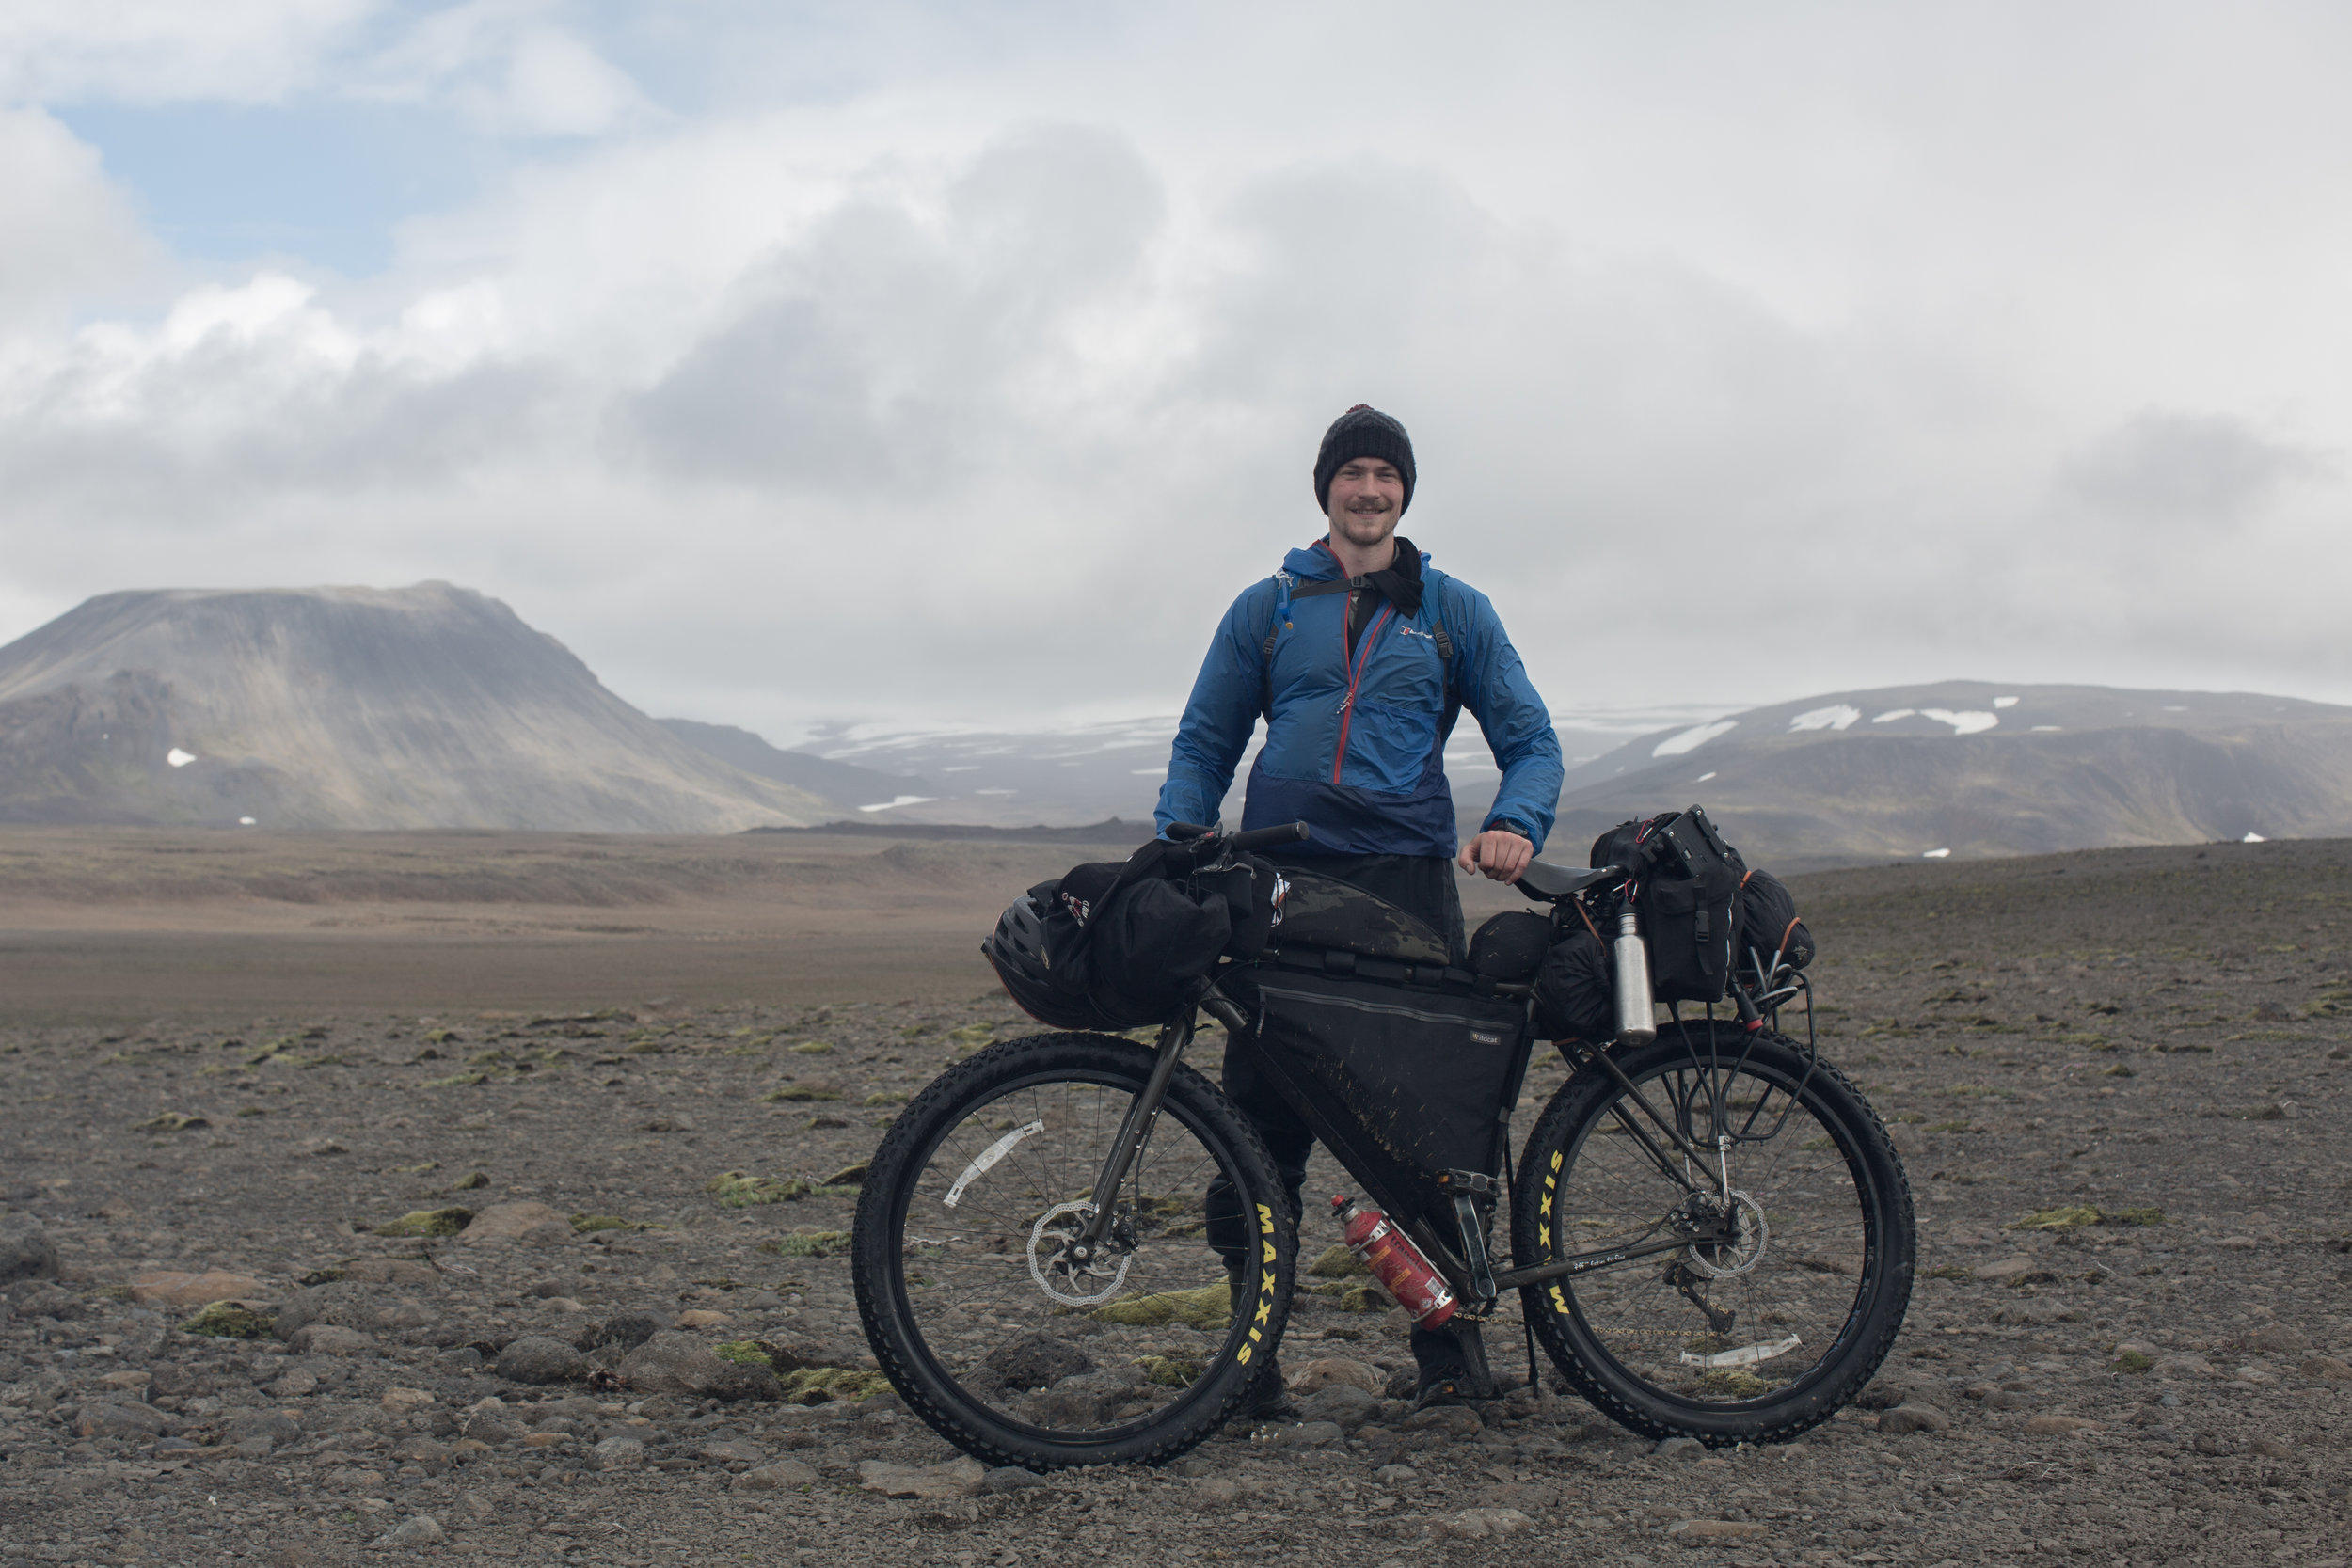 bikepacking, bikepacking blog, bicycle touring, bicycle touring blog, jack mac, jack macgowan, bicycle touring apocalypse, travel, travel blog, blogger, surly, surly bikes, fat bike, 29er, maxxis, car sick designs, atm handmade goods, j paks, wildcat gear, carradice, carradice super c, iceland, visit iceland, glaciers, berghaus, blacks outdoors, iceland midnight sun, midnight sun, f550, f550 iceland, f338 iceland, iceland f550, iceland f roads